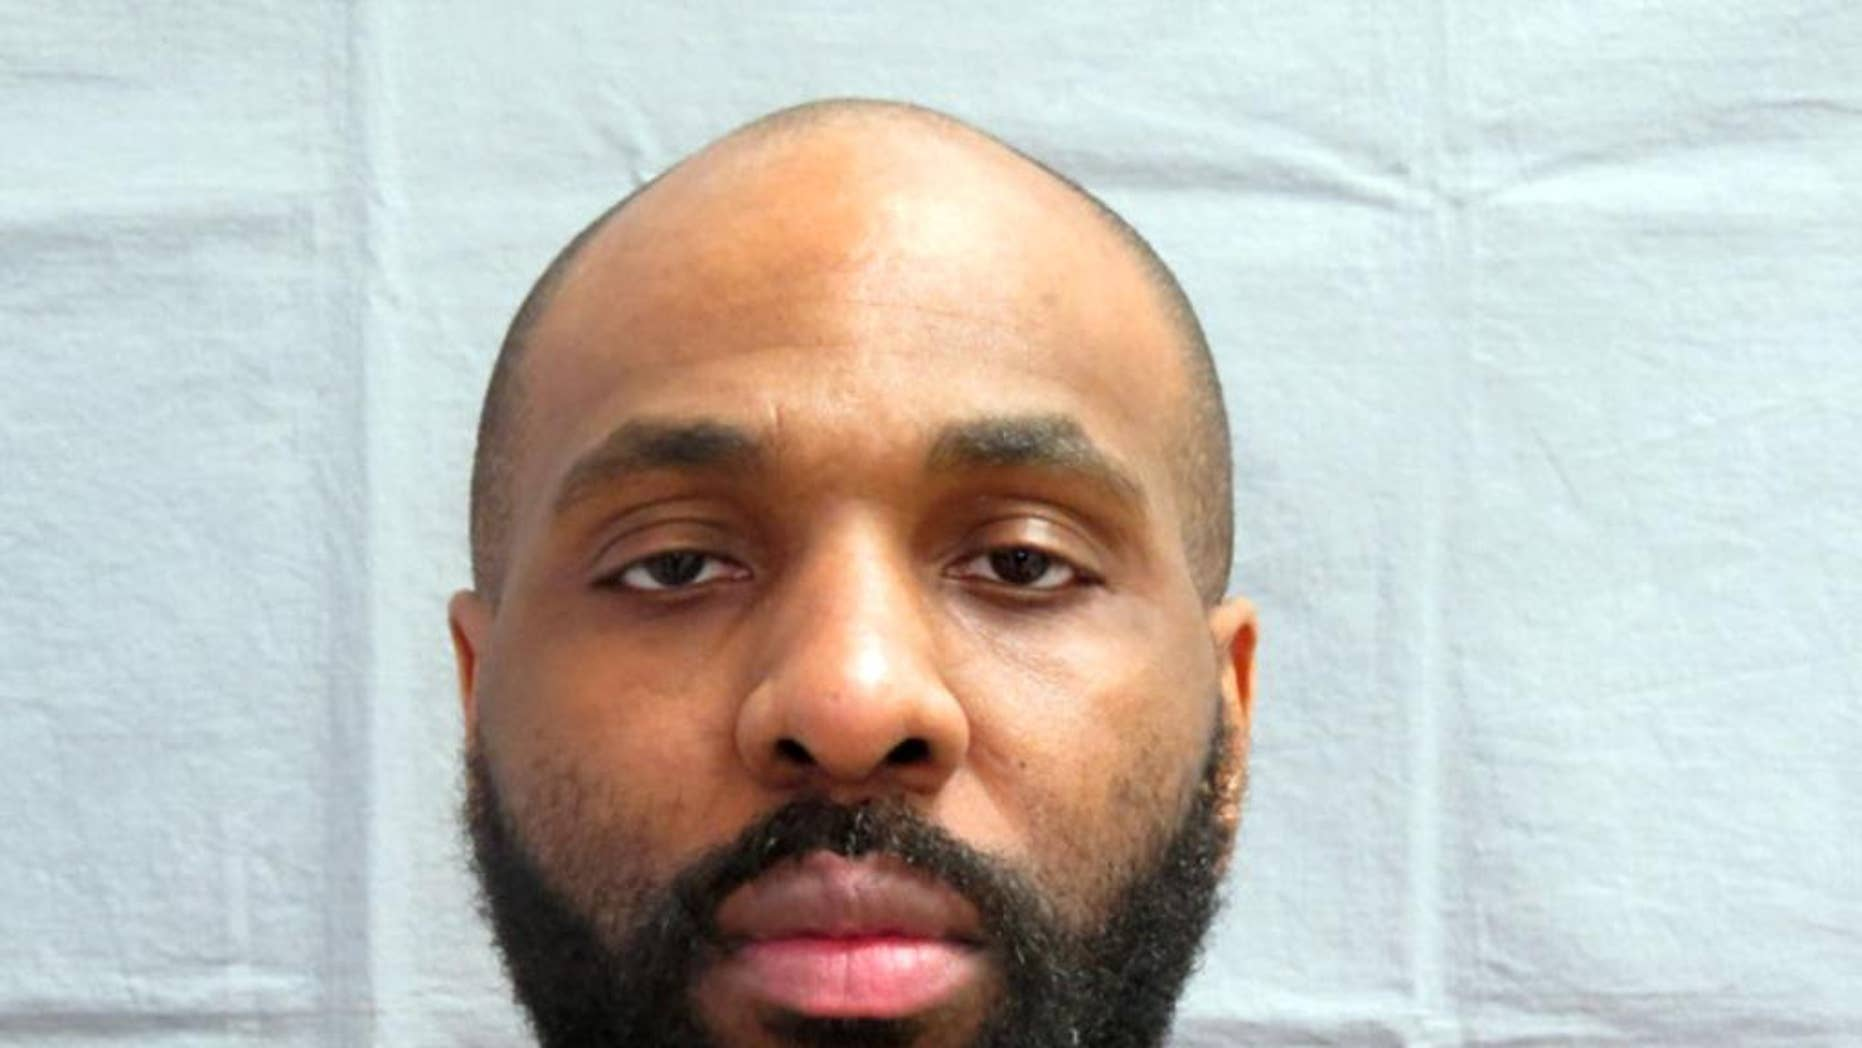 In this photo taken on March 30, 2013 provided by the Michigan Department of Corrections, Nosakhare Onumonu appears in a booking mug. A unique glove and a DNA match helped lead to a conviction in the 1999 slaying of an 84-year-old woman whose body was found in an alley behind a church on Detroit's west side, authorities said. A report in the Detroit Free Press details the case that led to Onumonu being convicted of first-degree murder and felony murder. The 38-year-old man is scheduled to be sentenced Friday, Aug. 21, 2015,  to the mandatory term of life in prison without the possibility of parole. (Michigan Department of Correction via AP)